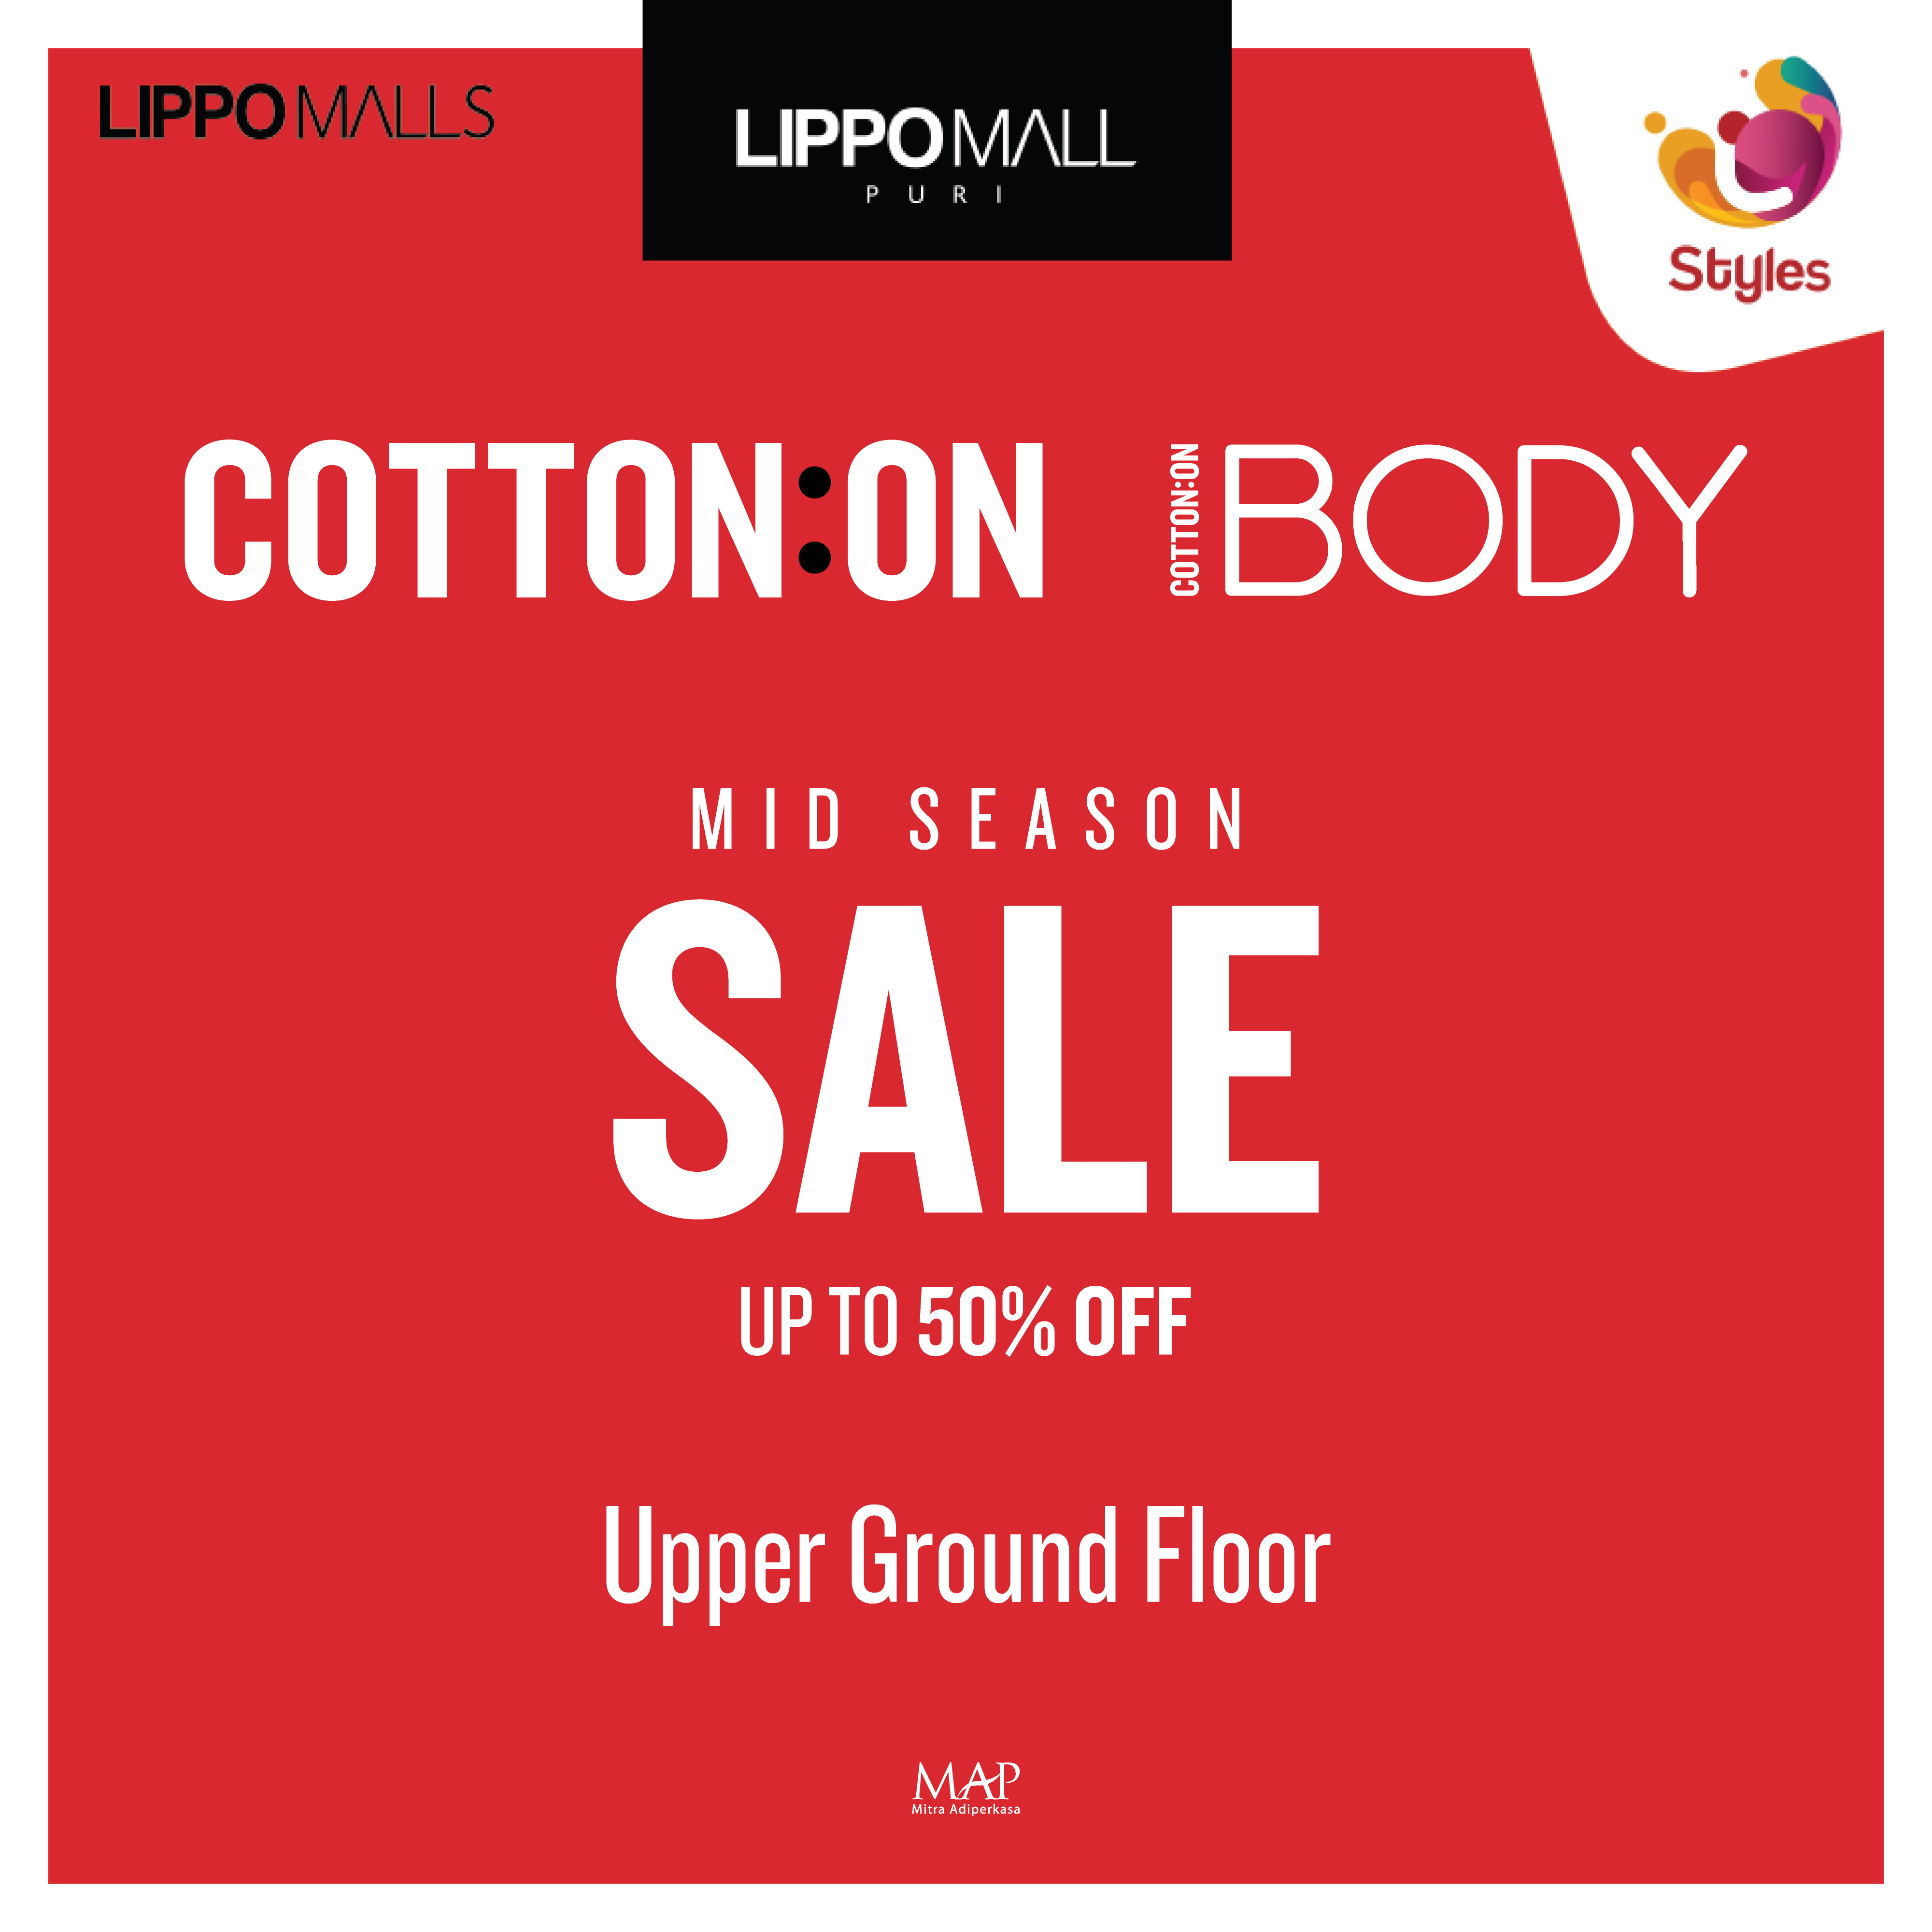 cotton on Promo in lippo mall puri st. moritz